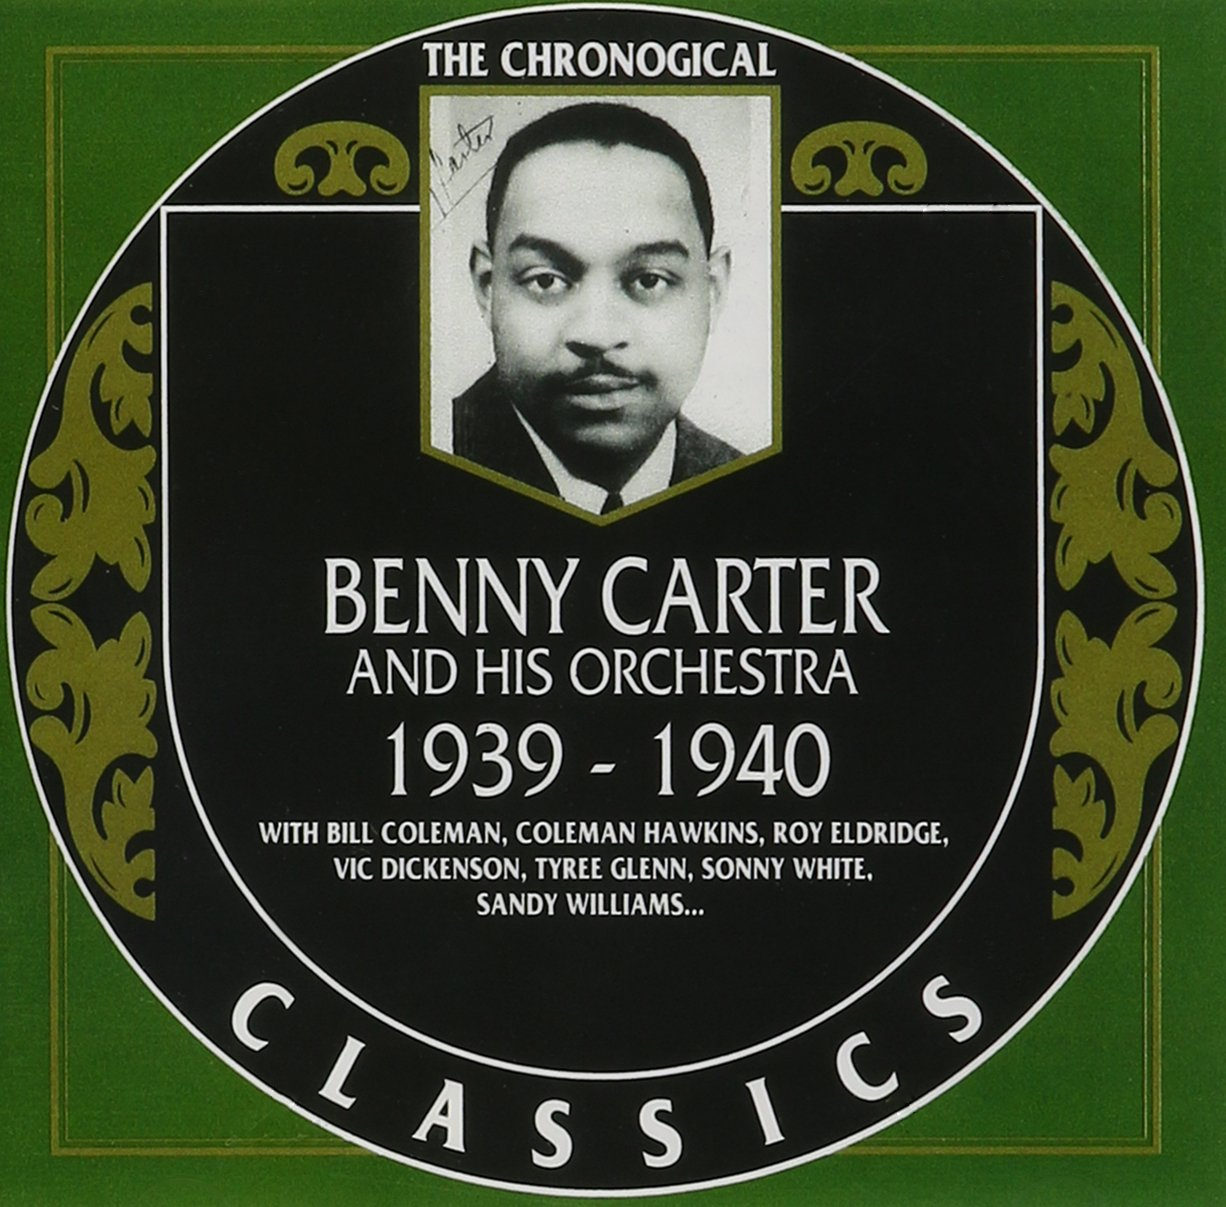 Benny Carter and His Orchestra: The Chronological Classics, 1939-1940 by Classics